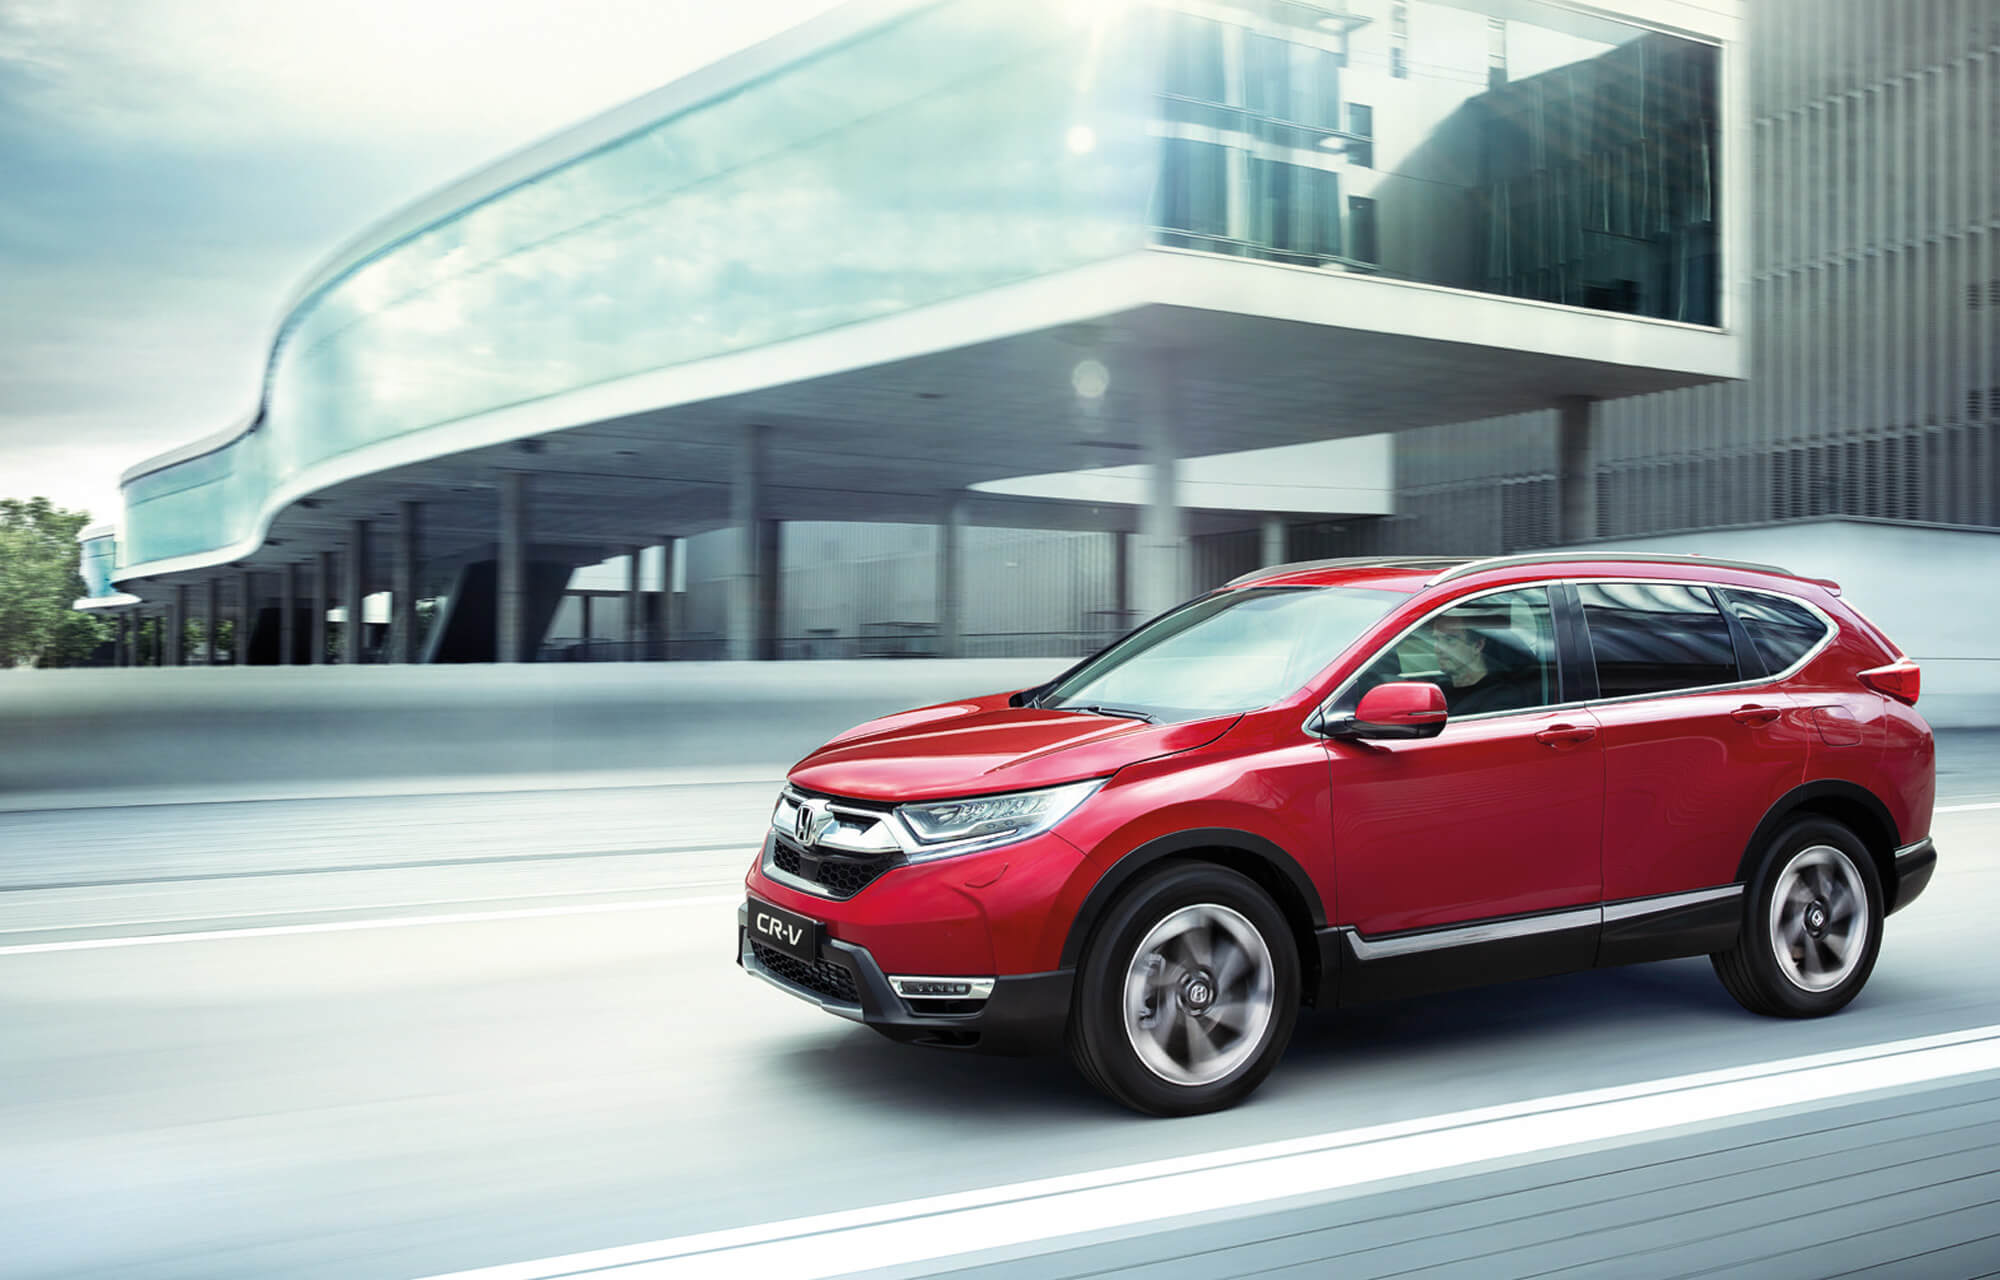 The all-new Honda CR-V